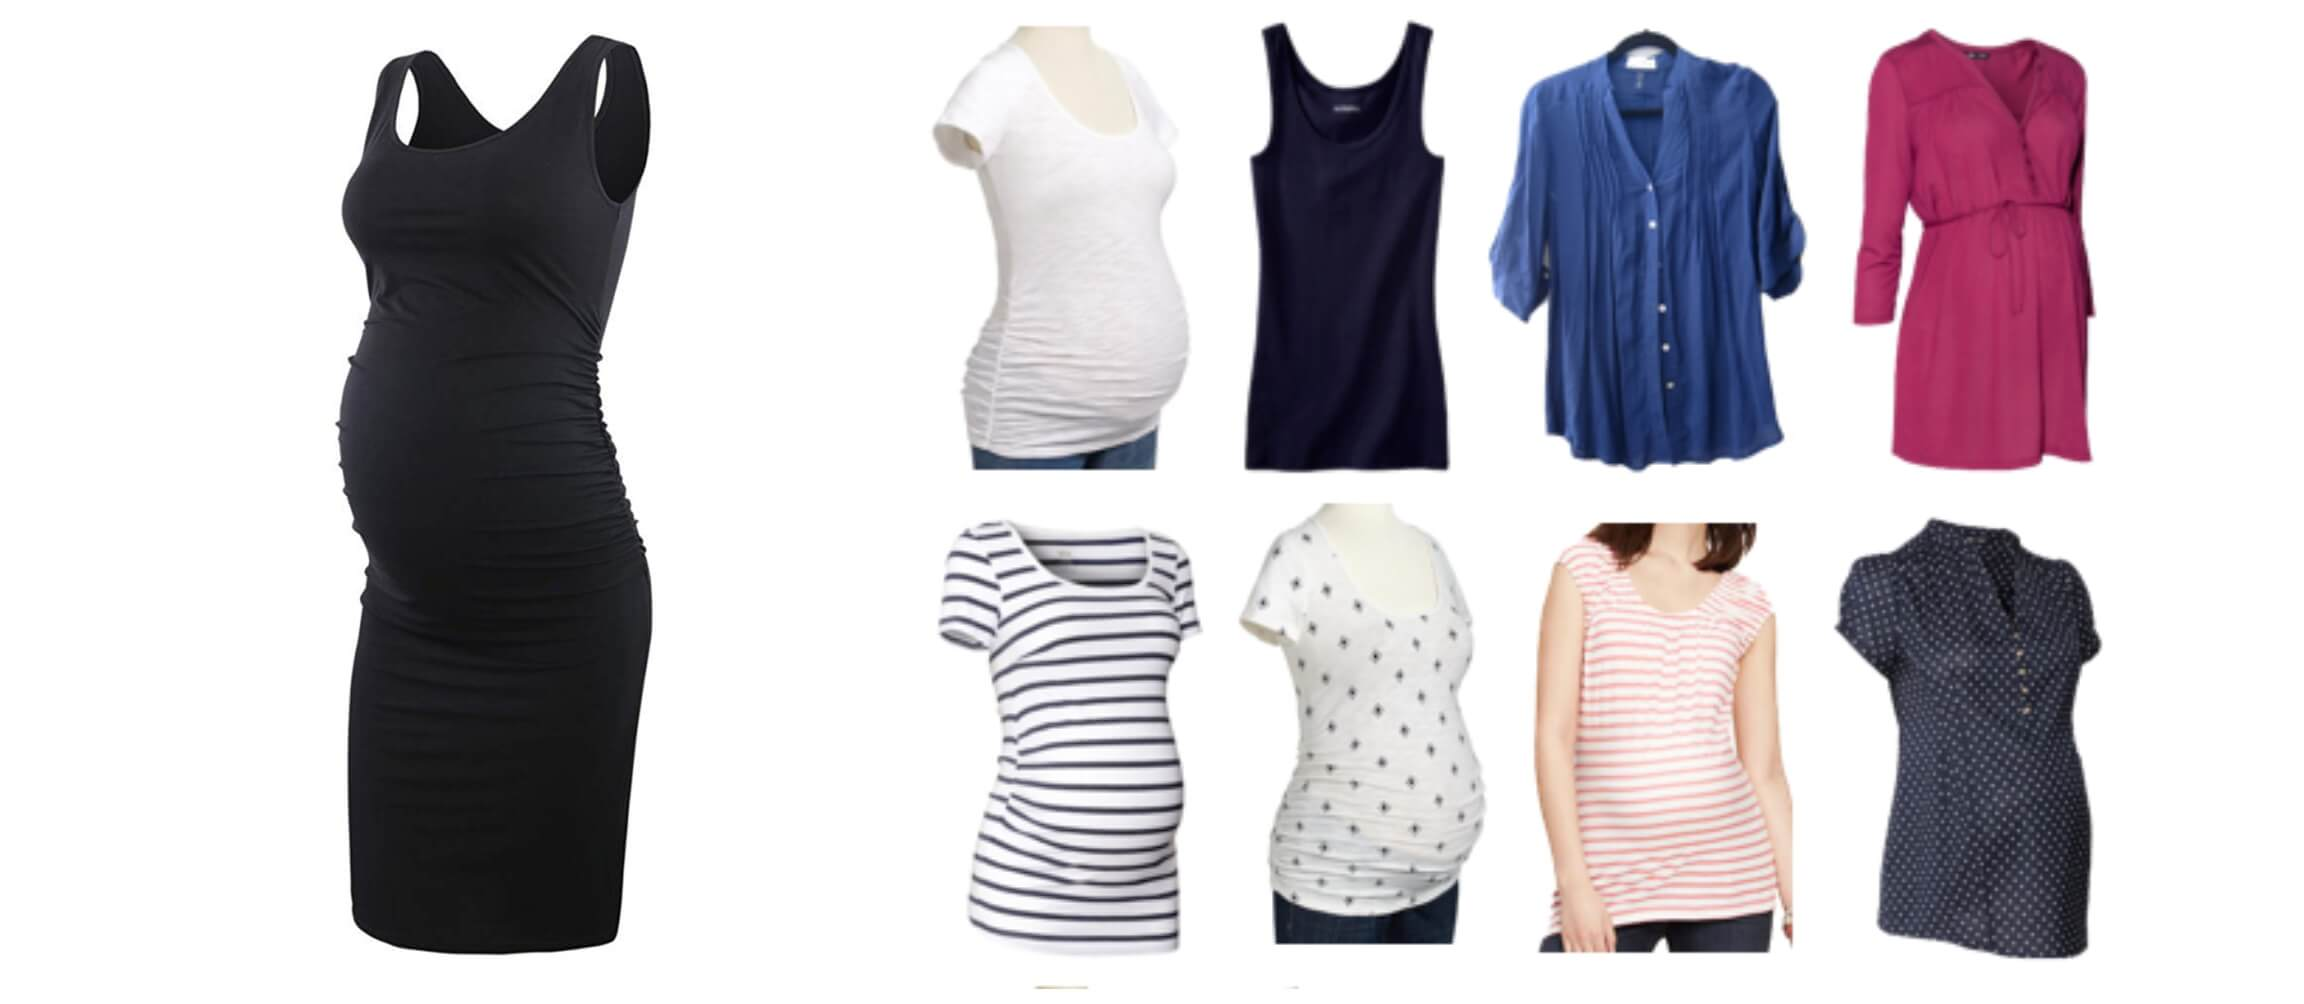 Read more about the article Accessorize Your Maternity Wardrobe